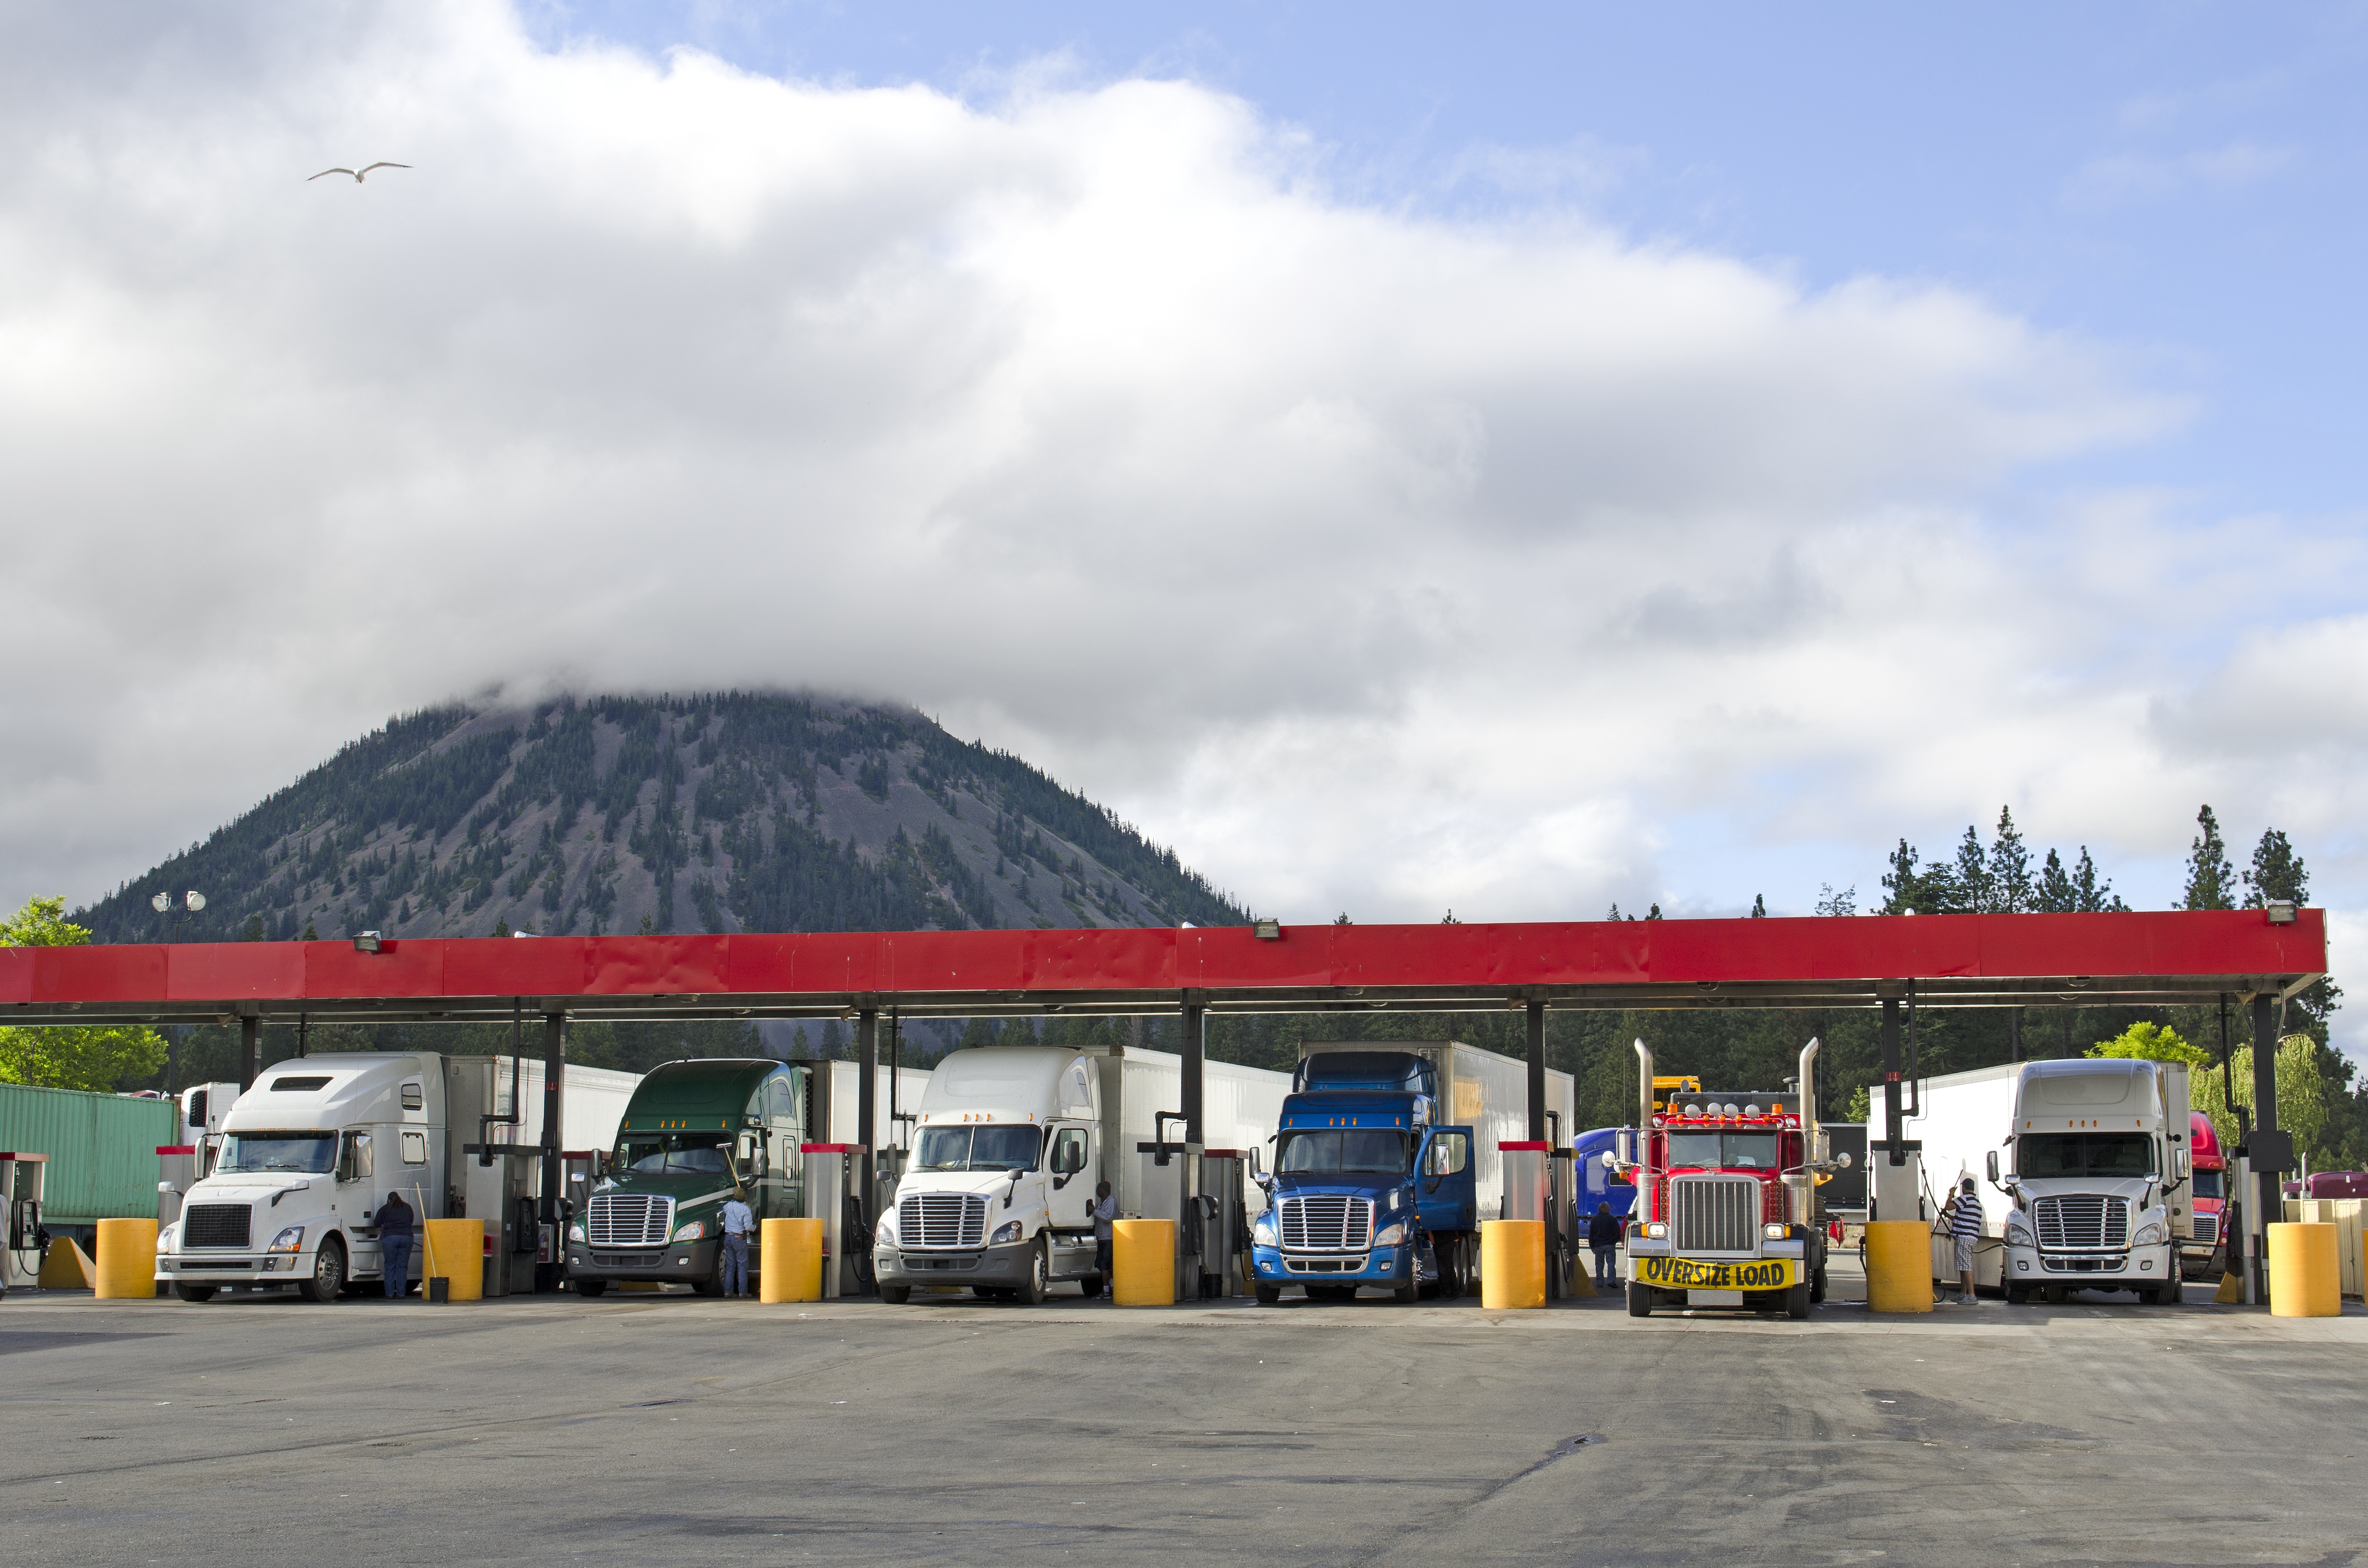 Trucks at a Gas Station